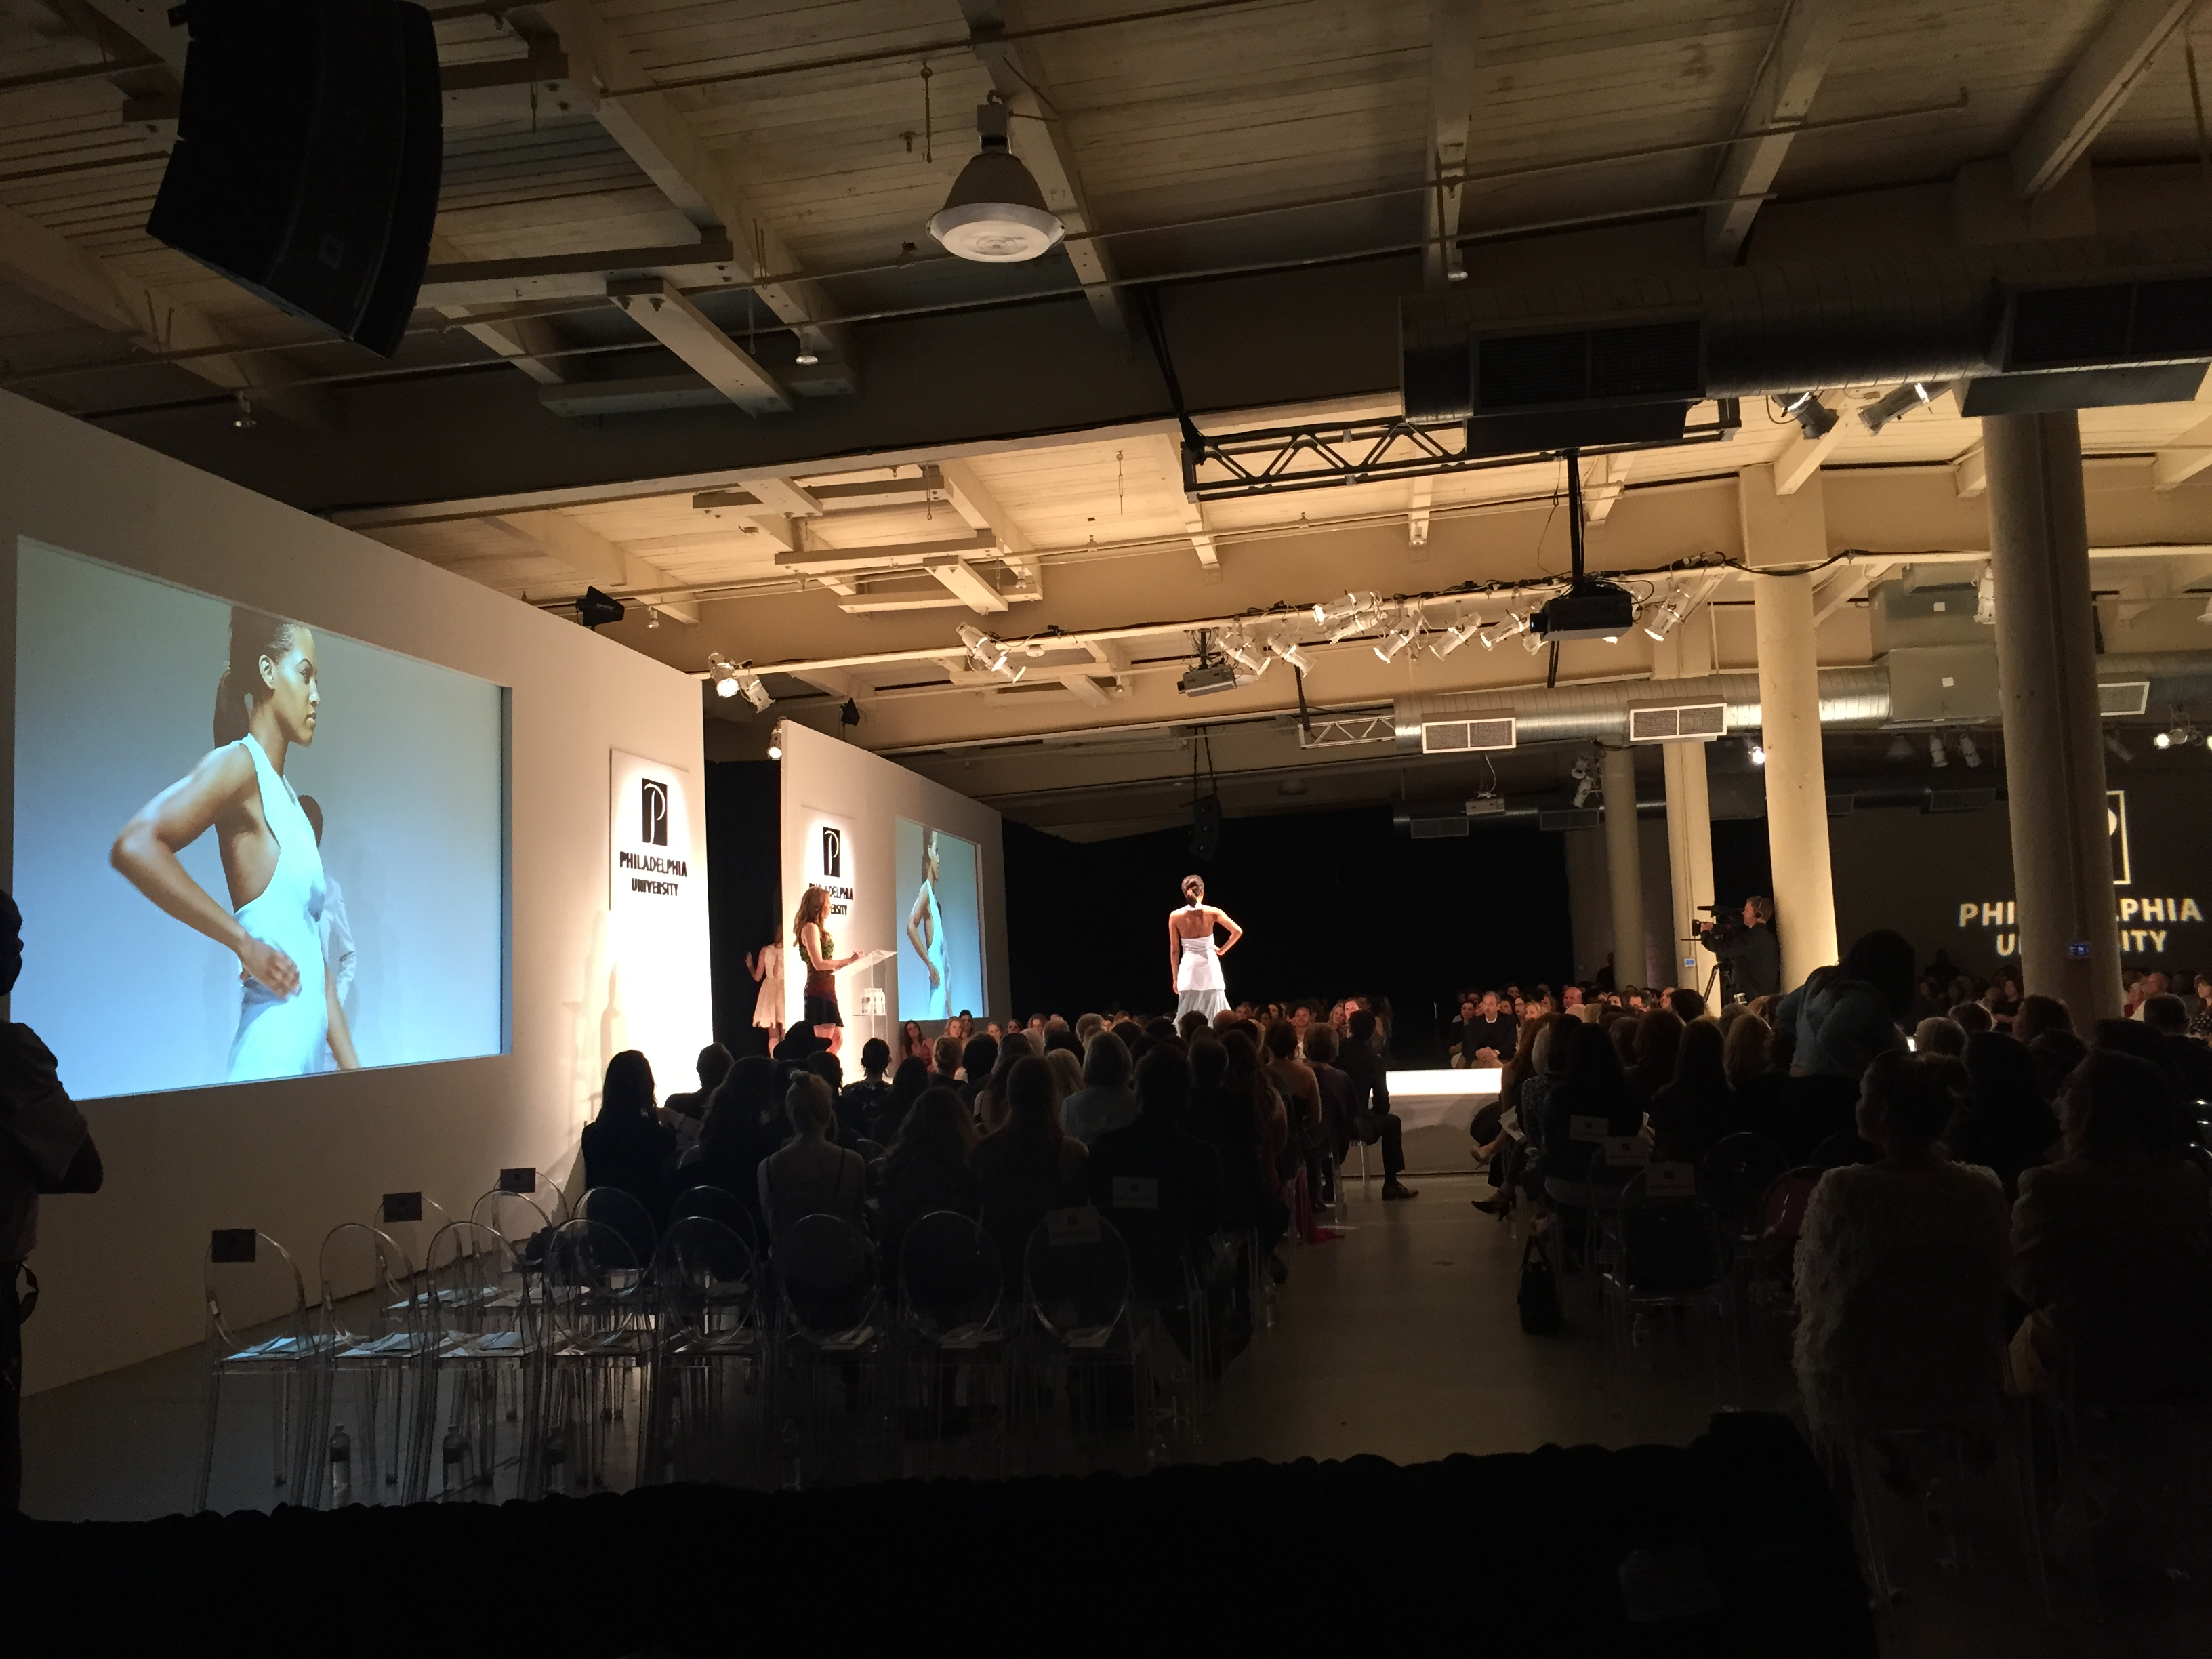 Style Reigns At Another Philadelphia University Fashion Show Evantine Design Weddings And